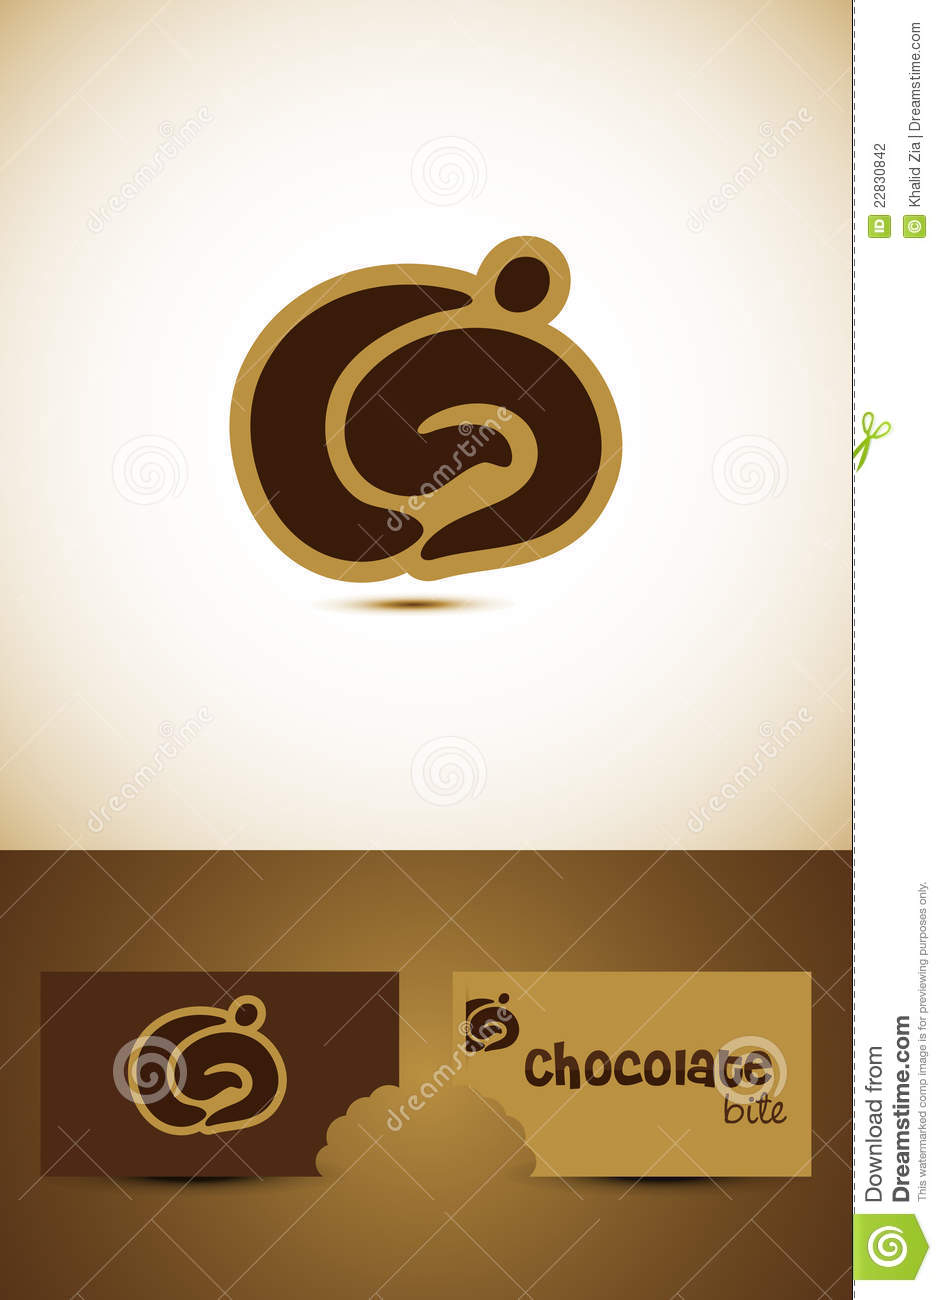 Hot Chocolate Icon Design Stock Photography - Image: 22830842